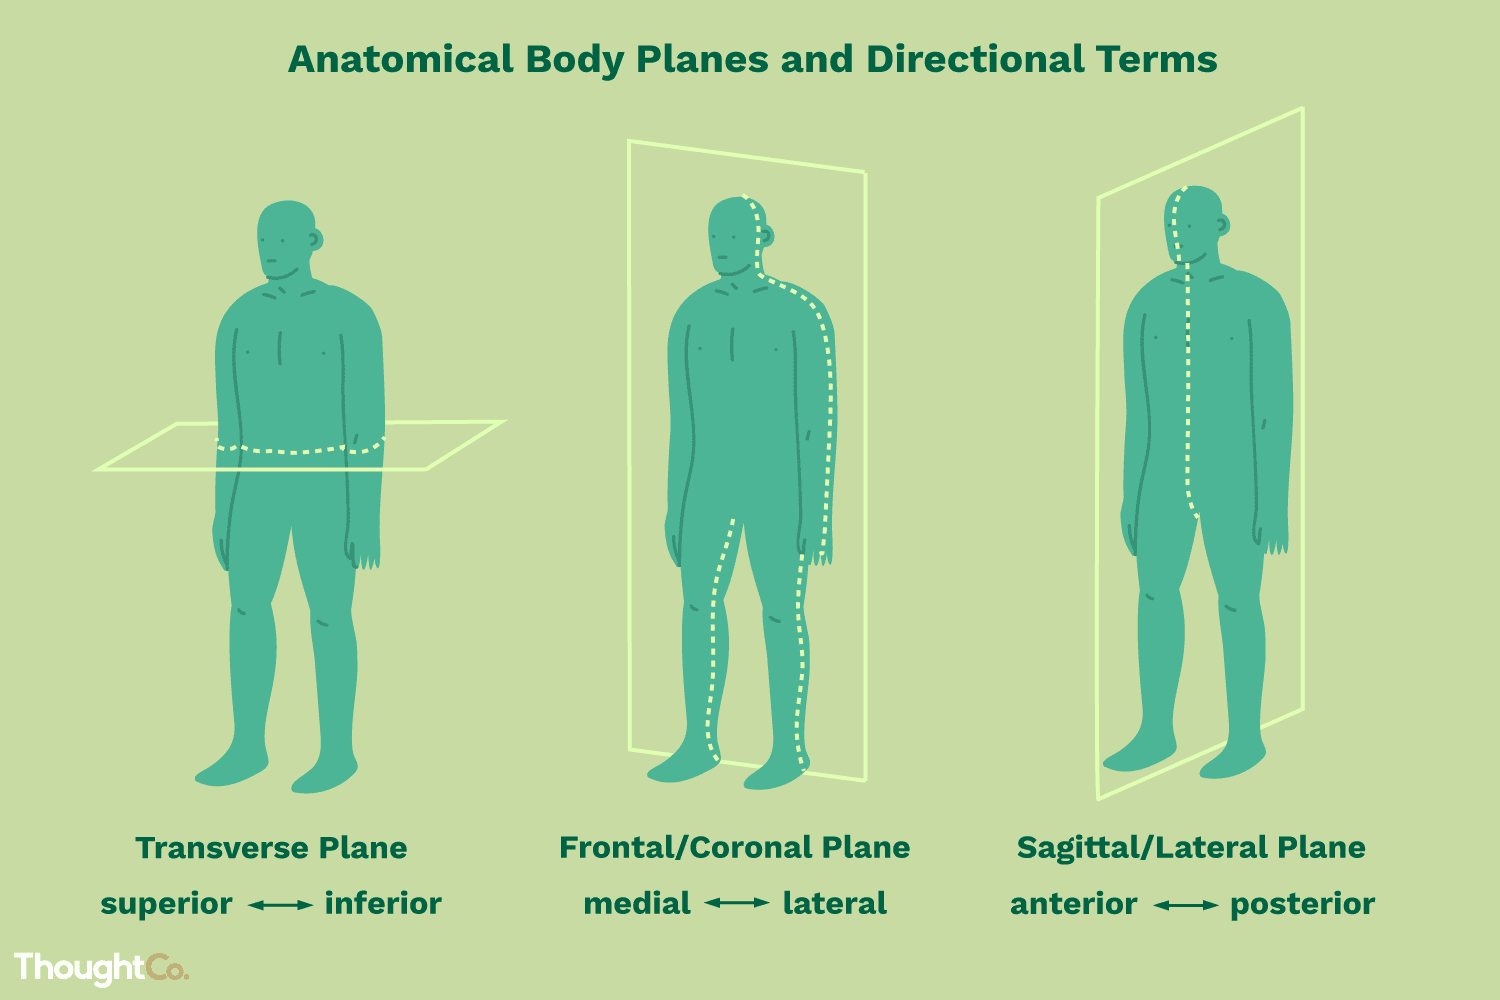 These Are The Anatomical Directional Terms You Should Know